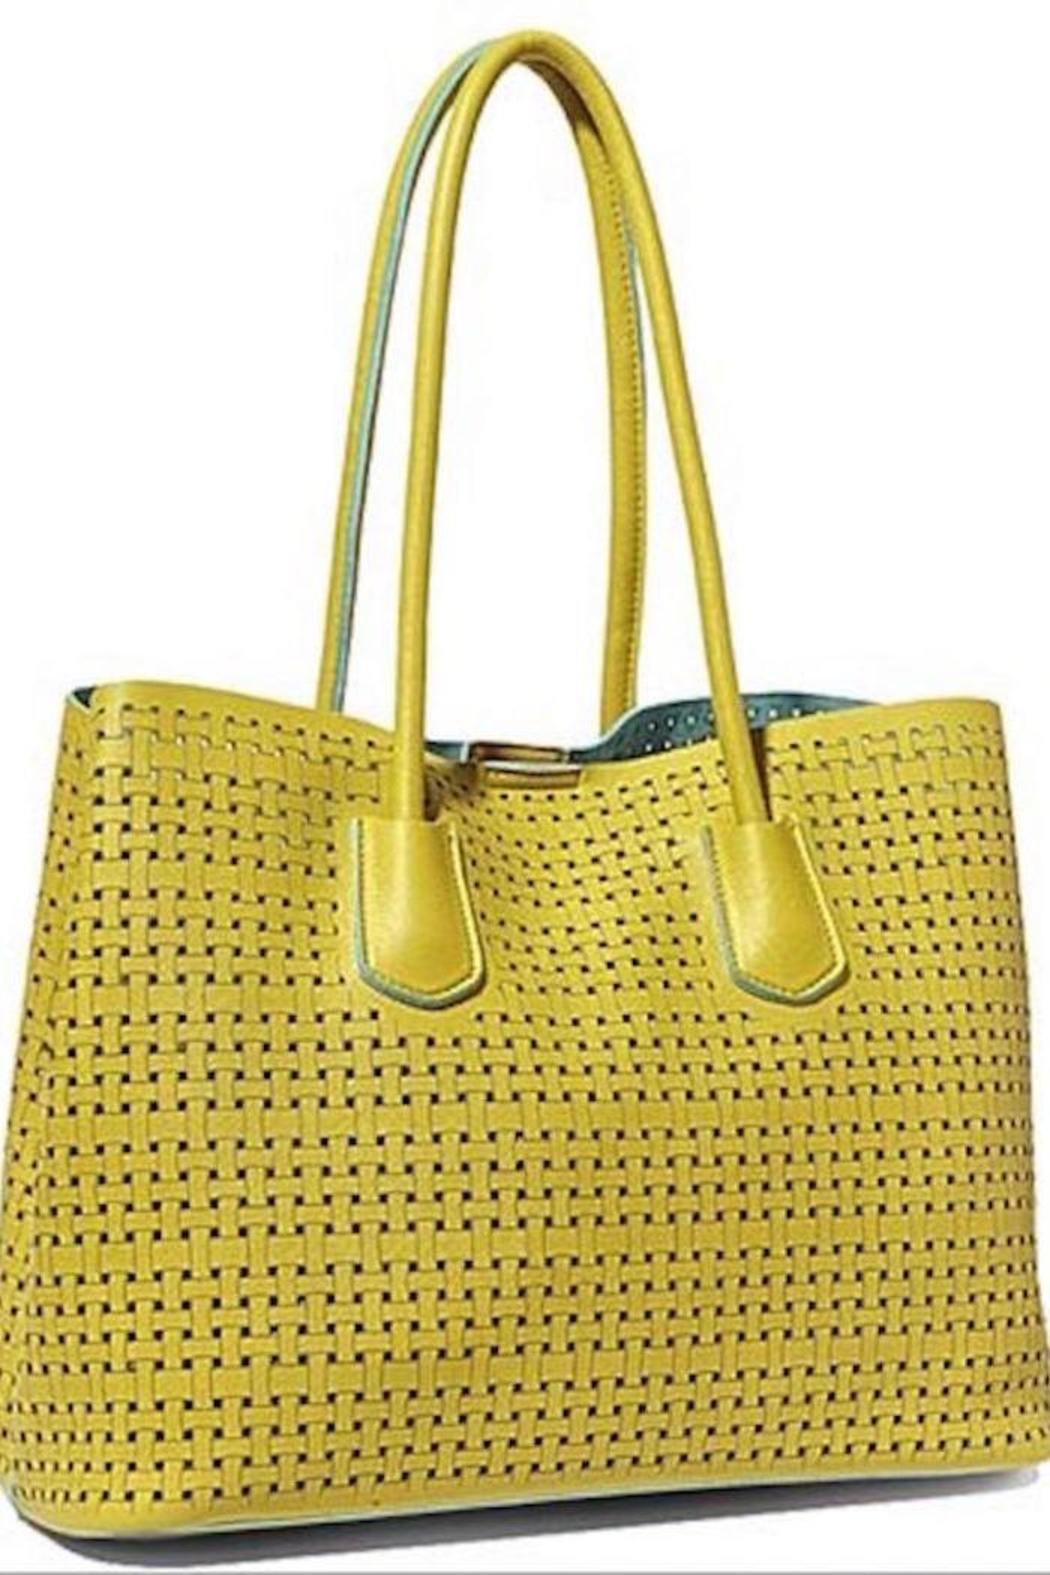 71333150a1 Big Buddha Perforated Sonora Handbag from Georgia by Boulignini ...